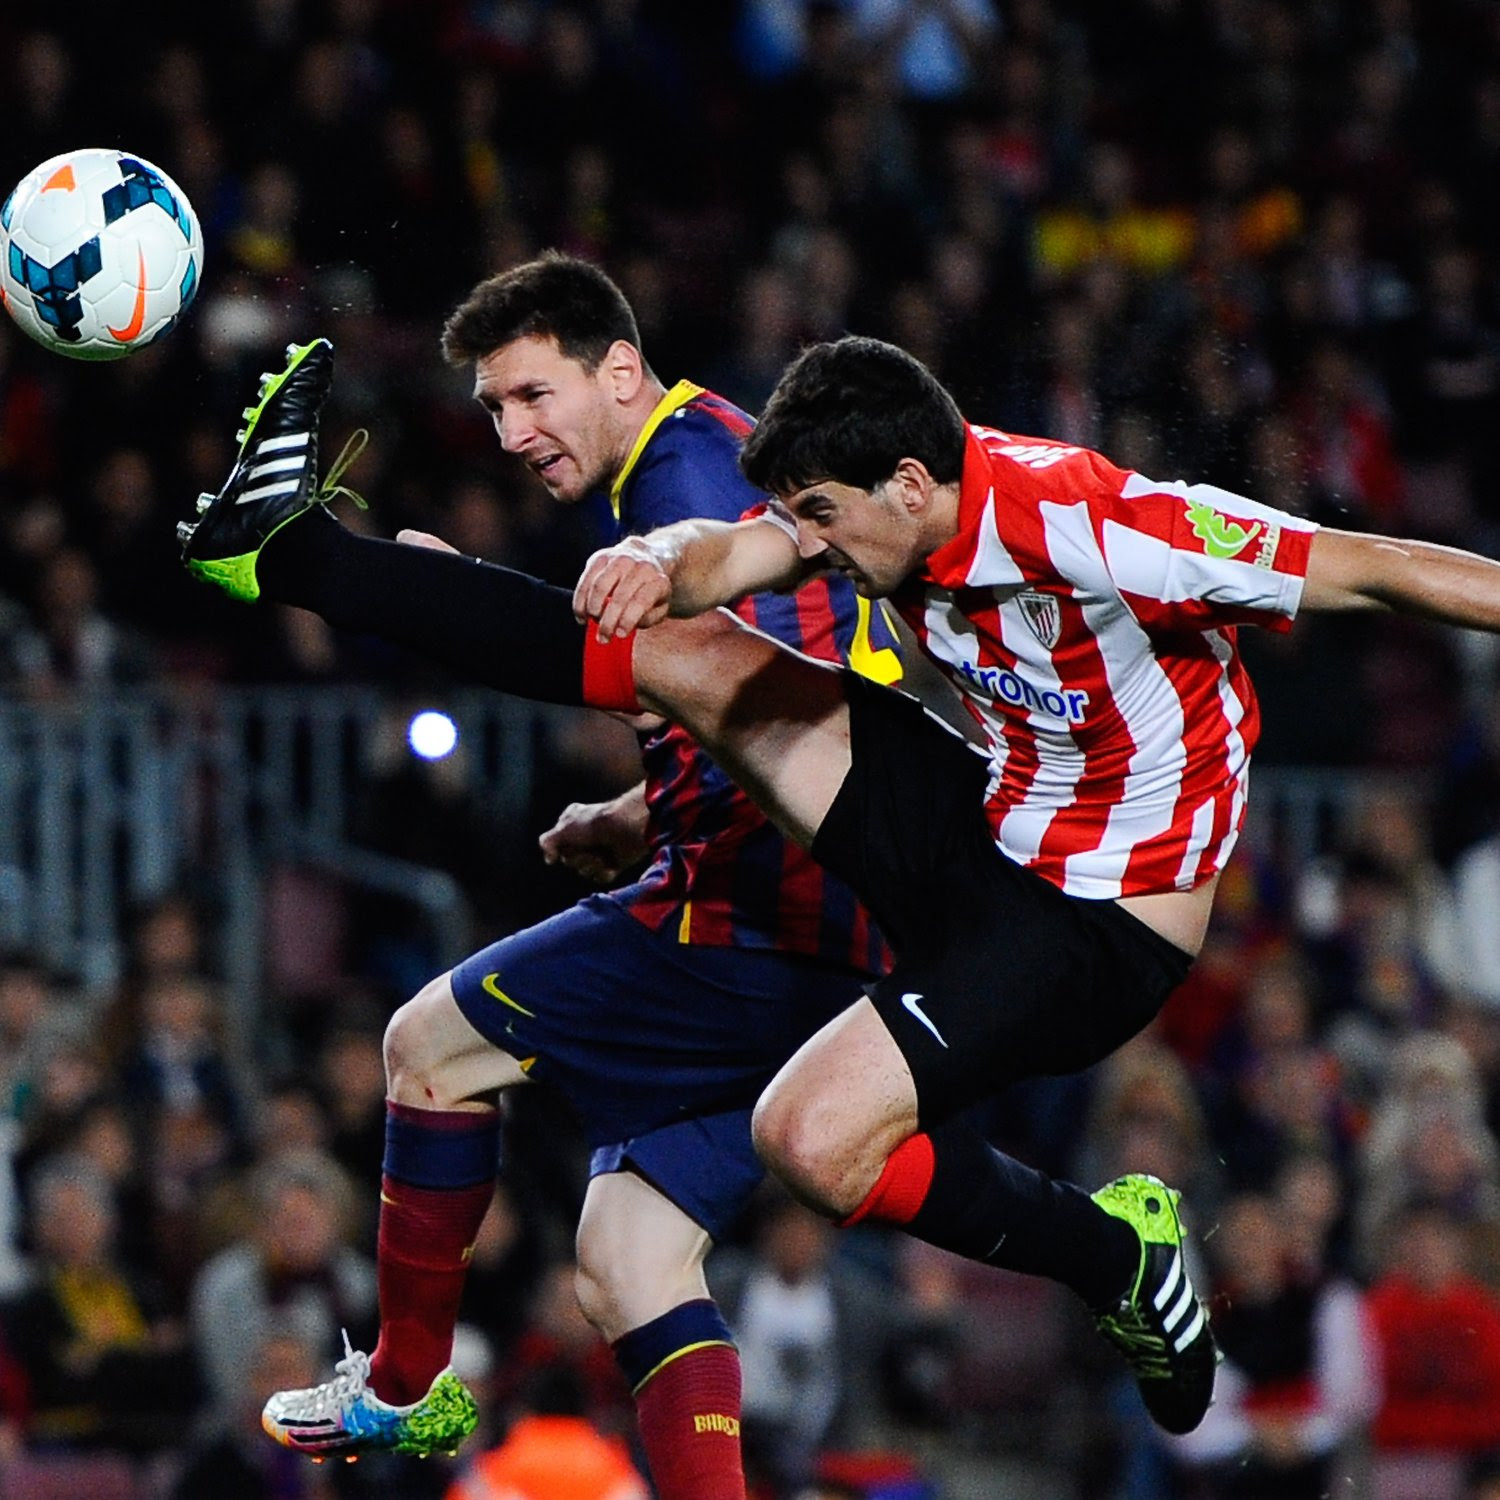 Barcelona vs. Athletic Bilbao: Live Score, Highlights from ...